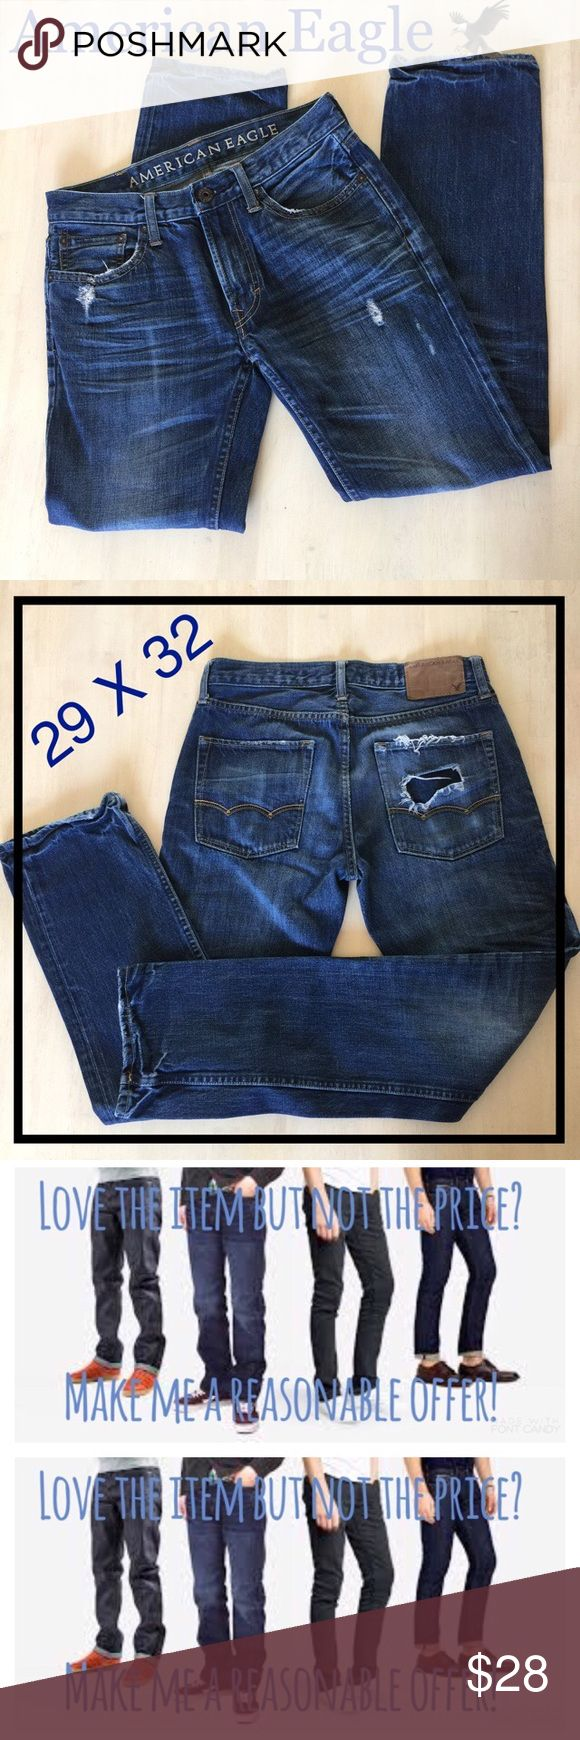 American Eagle 🦅 29X32 #171 Men's 29x32 Distressed Jeans. Very good condition. All orders are shipped same or next business day. American Eagle Outfitters Jeans Slim Straight